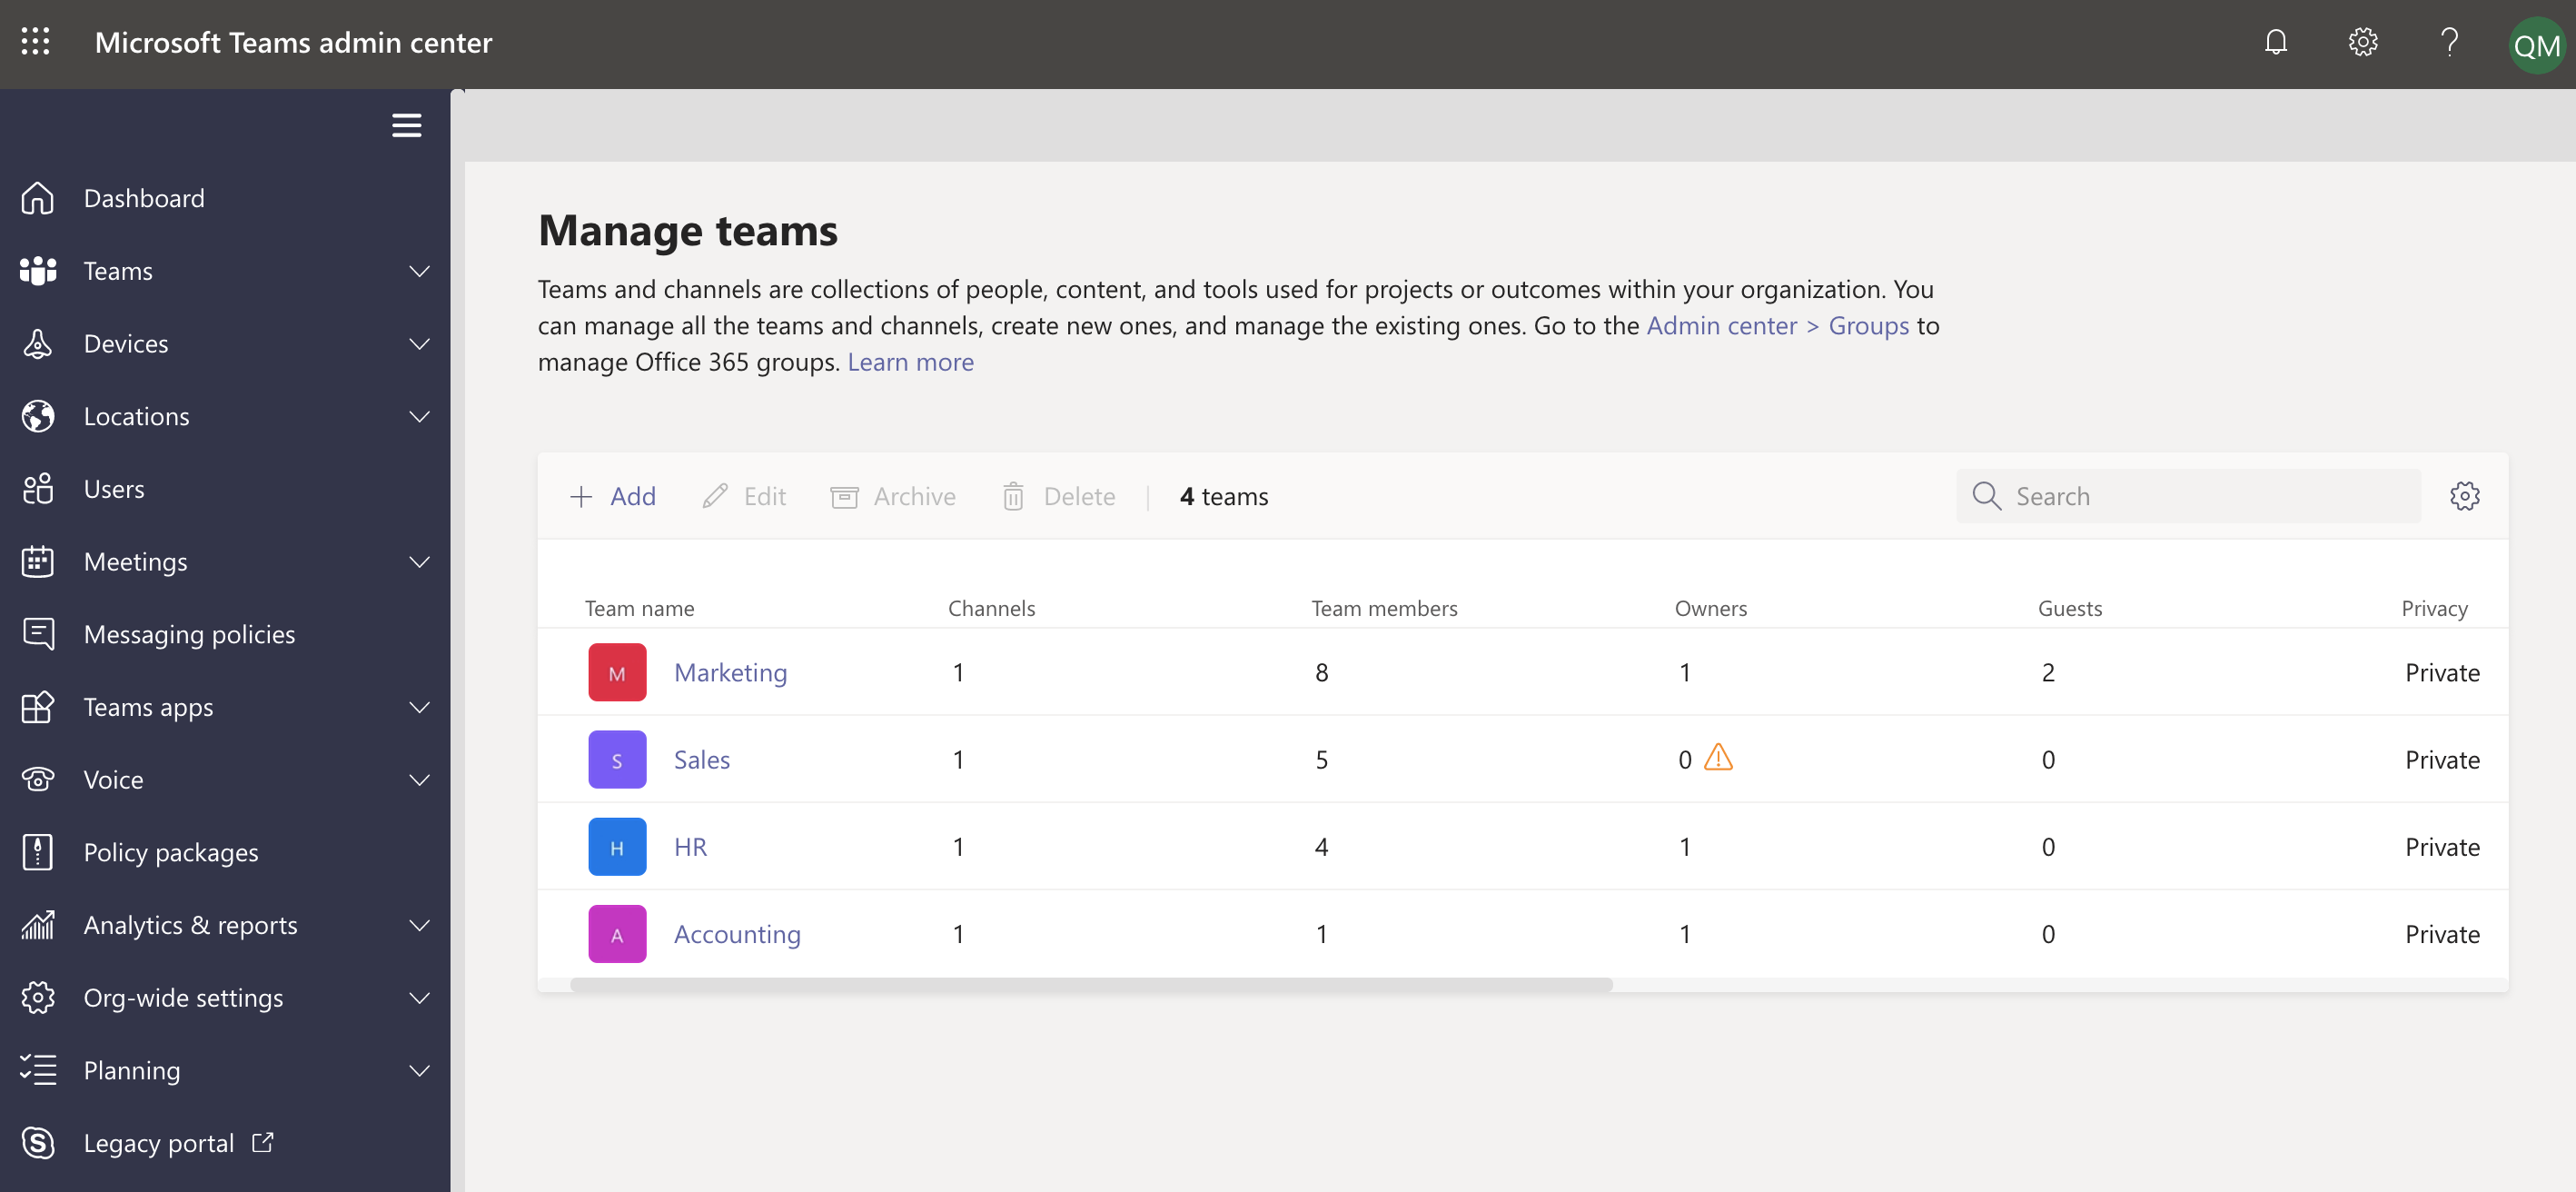 See which teams are ownerless in the Microsoft Teams admin center.